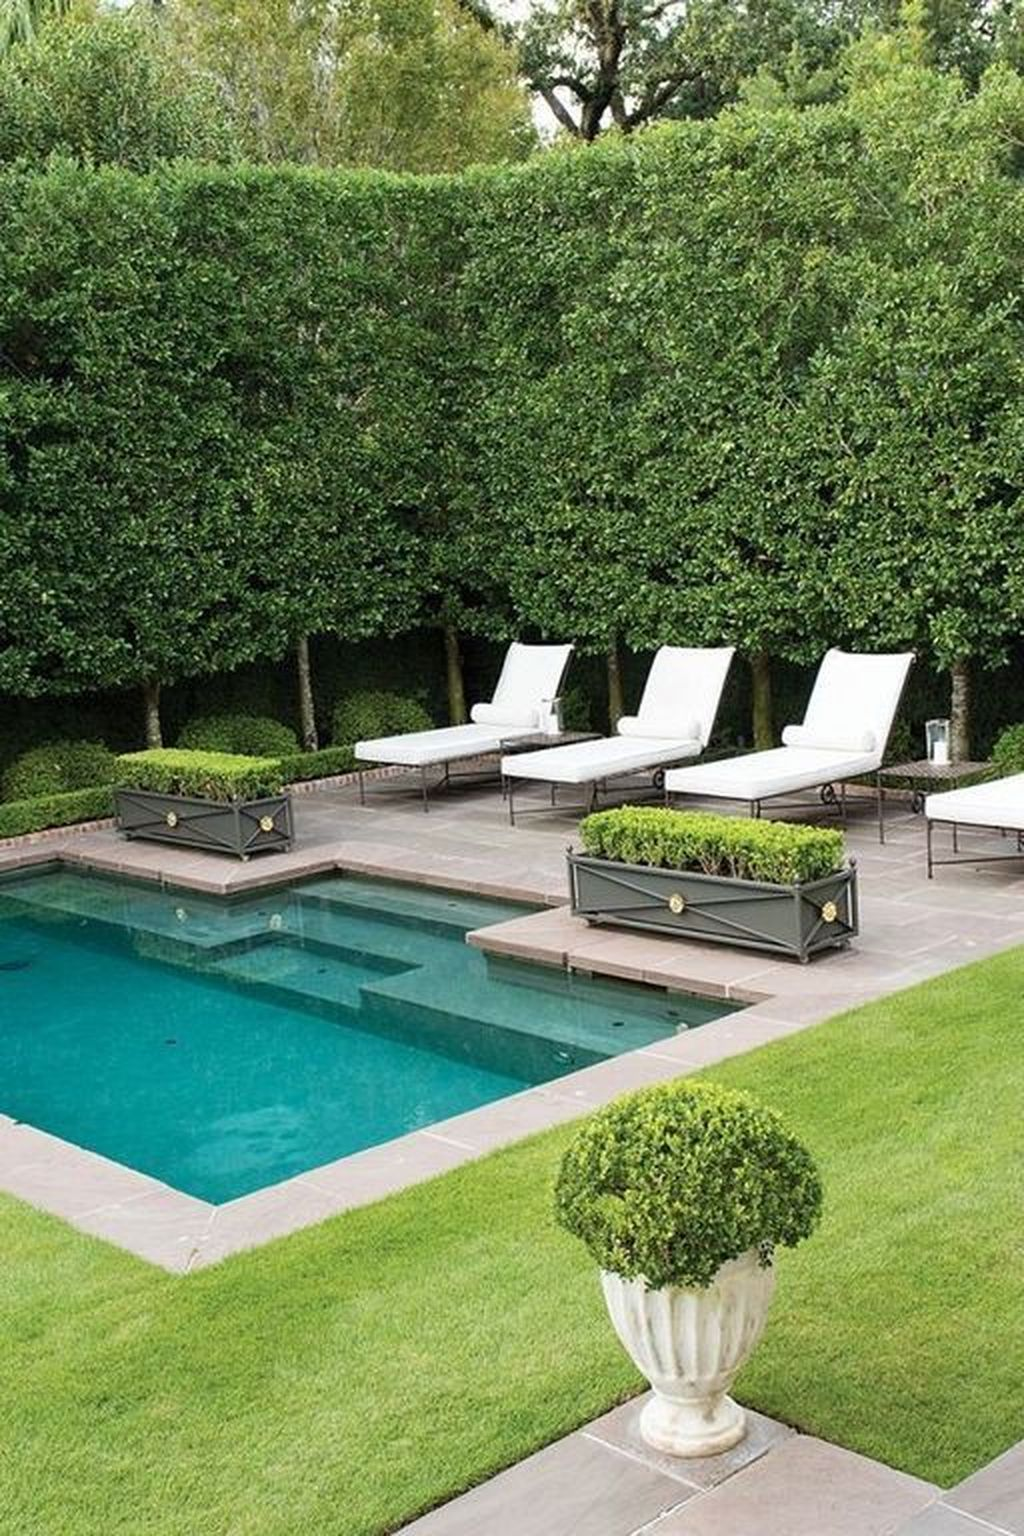 45 Landscaping Ideas For Backyard Swimming Pools In 2020 Pool Patio Furniture Small Backyard Design Swimming Pools Backyard